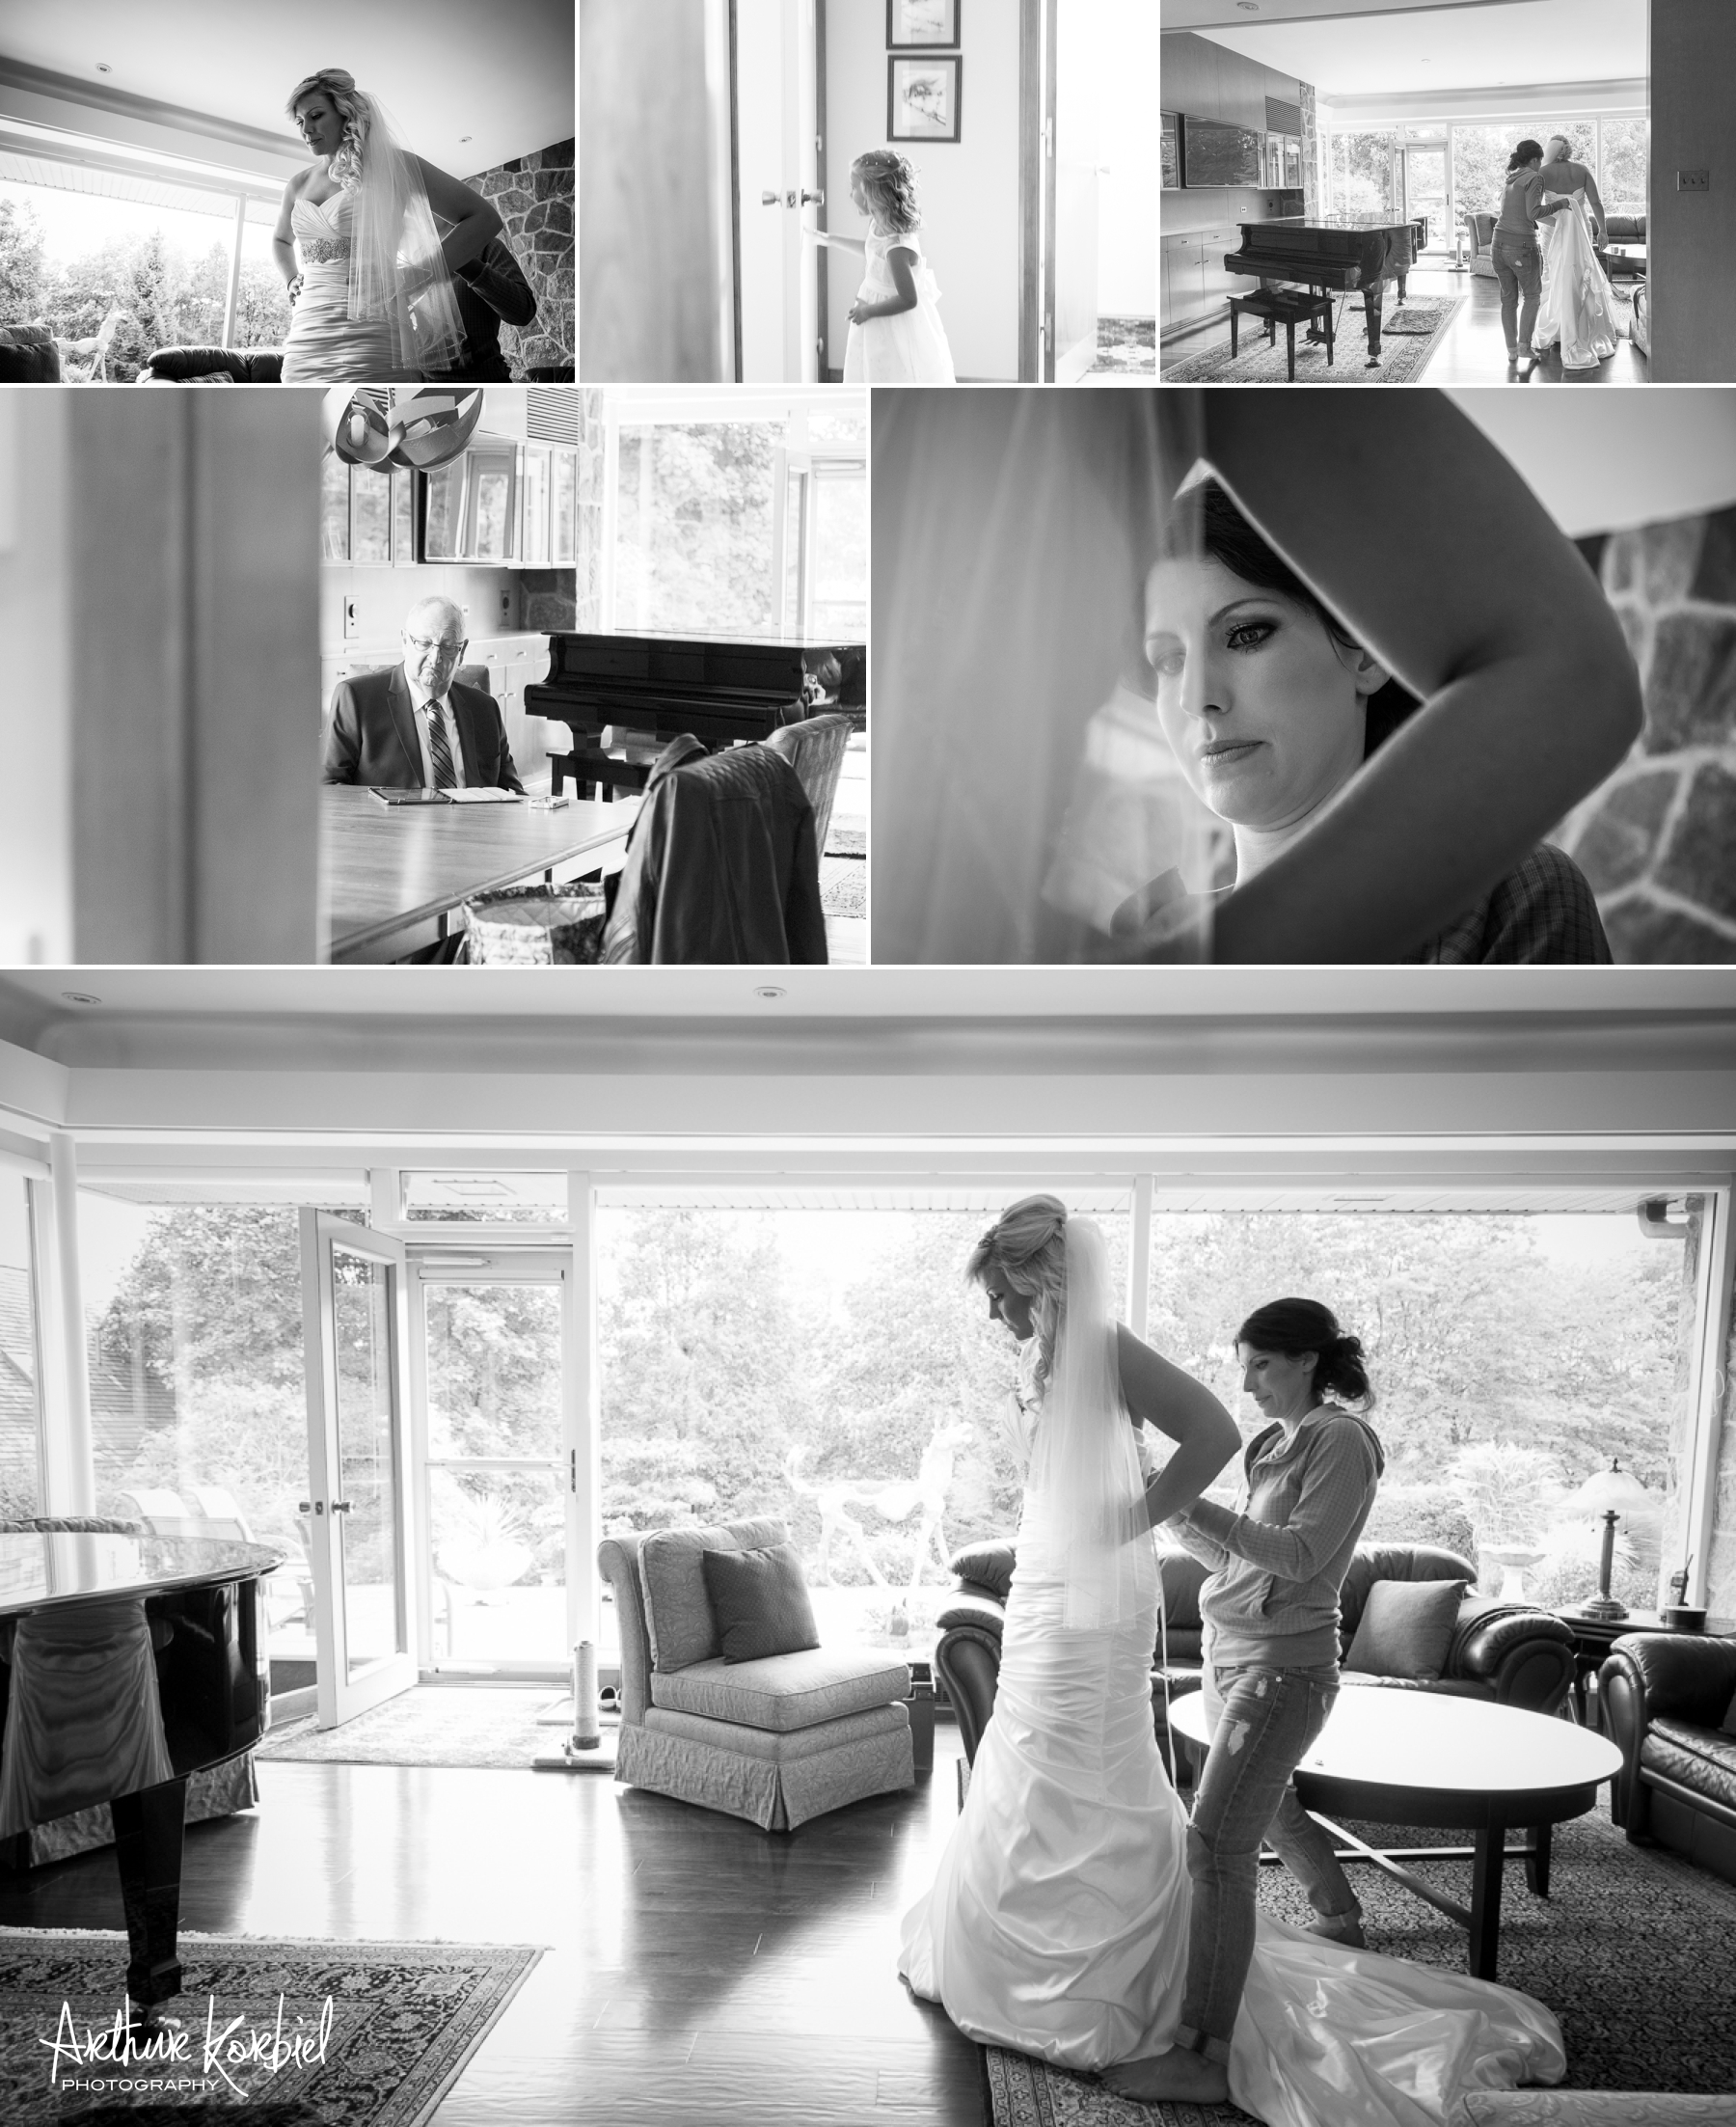 Arthur Korbiel Photography - London Wedding Photographer - Stone Willow Inn - St Marys & Stratford_012.jpg